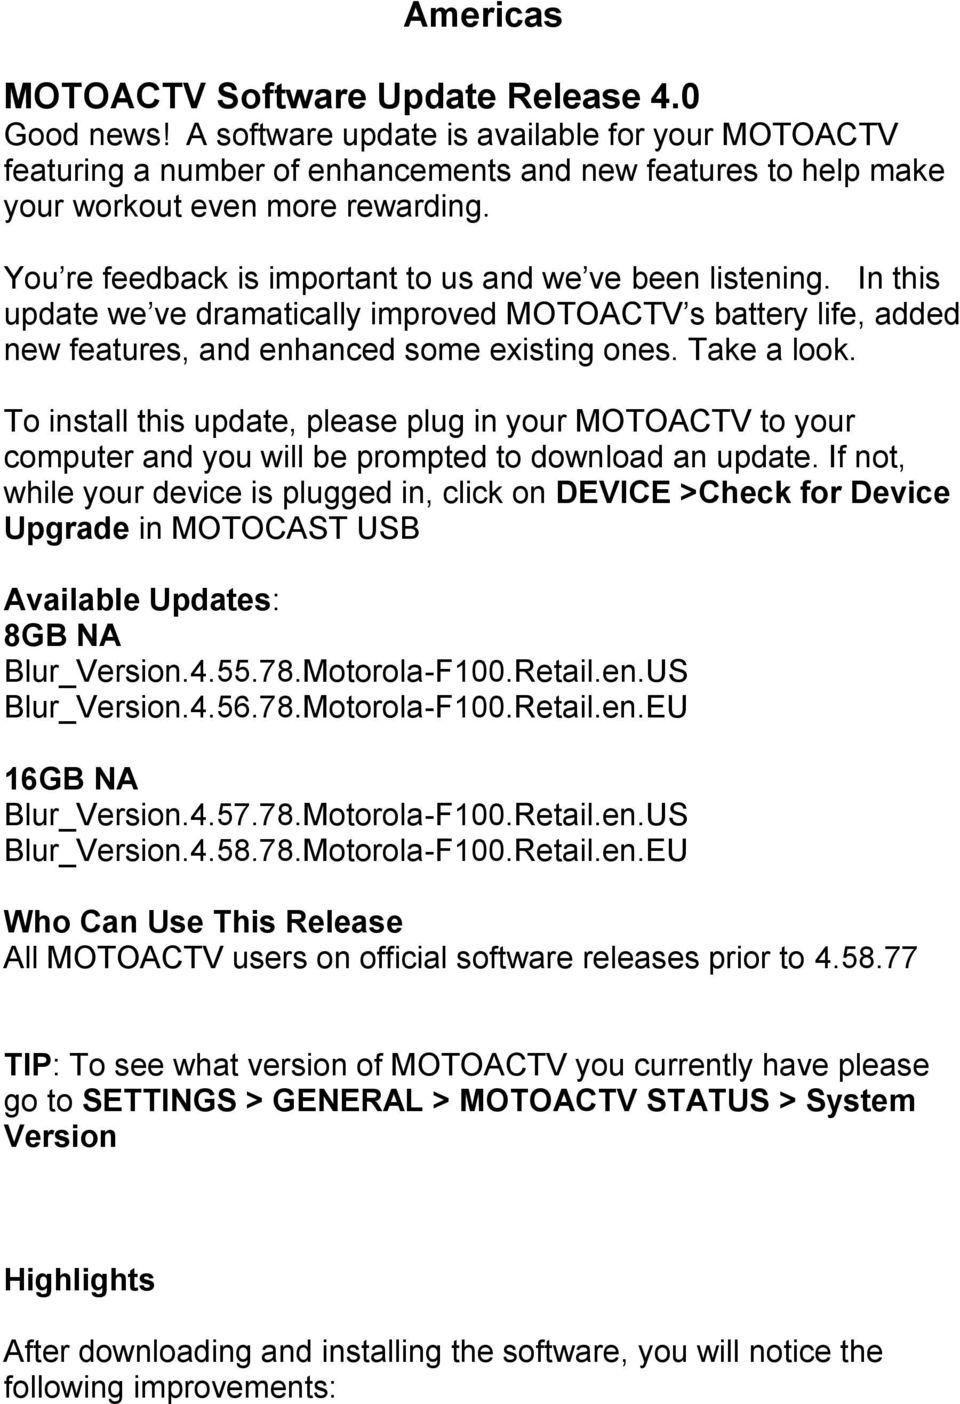 You re feedback is important to us and we ve been listening. In this update we ve dramatically improved MOTOACTV s battery life, added new features, and enhanced some existing ones. Take a look.